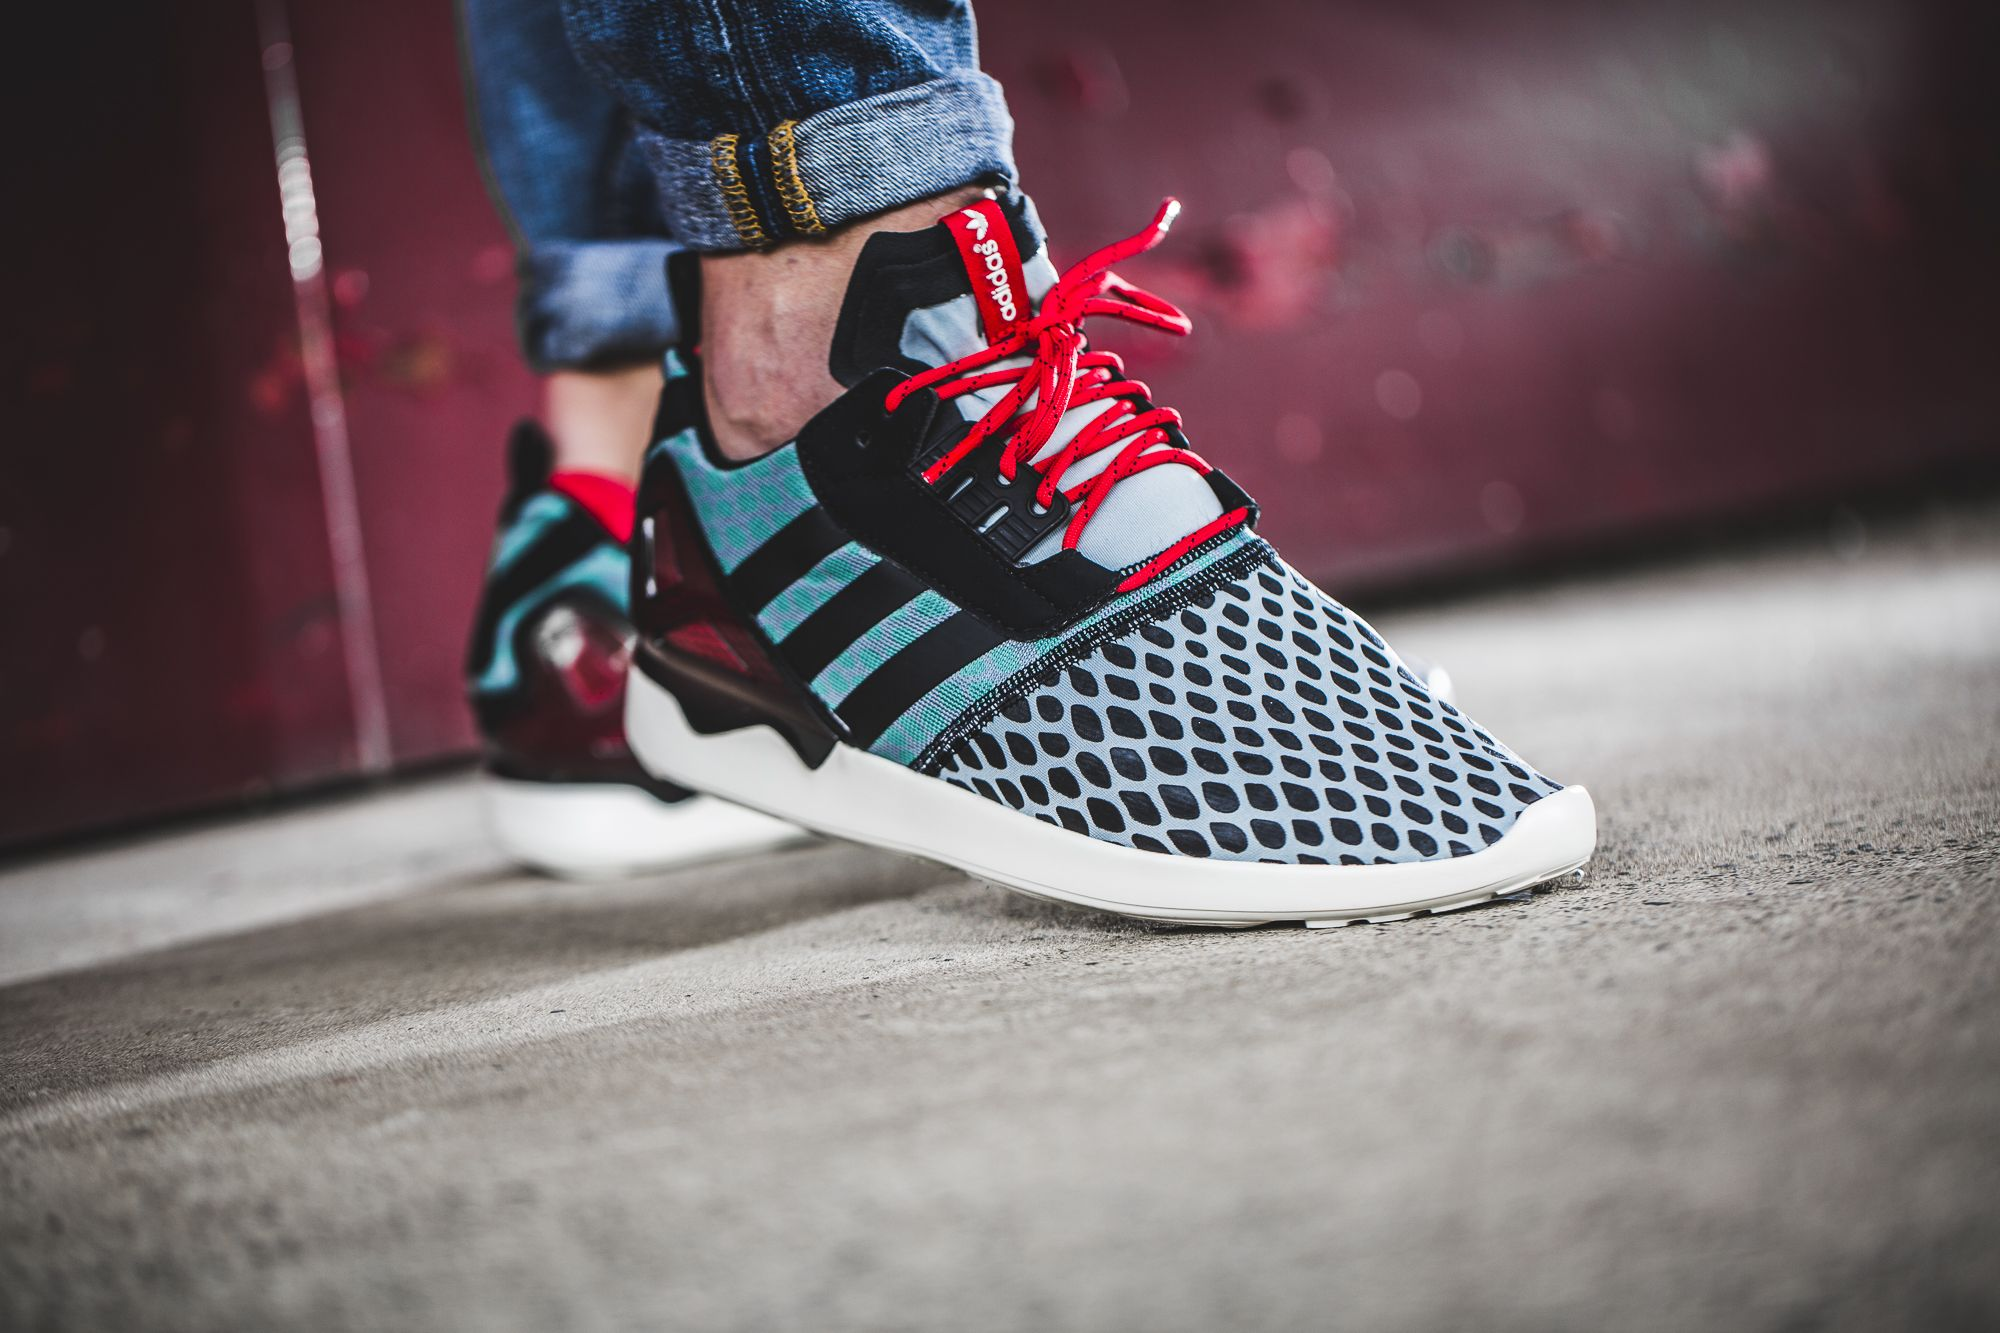 pretty nice 4113c 3263c The adidas Originals ZX 8000 Boost is available at our shop now! EU 41 13  - 46 23  130,-€